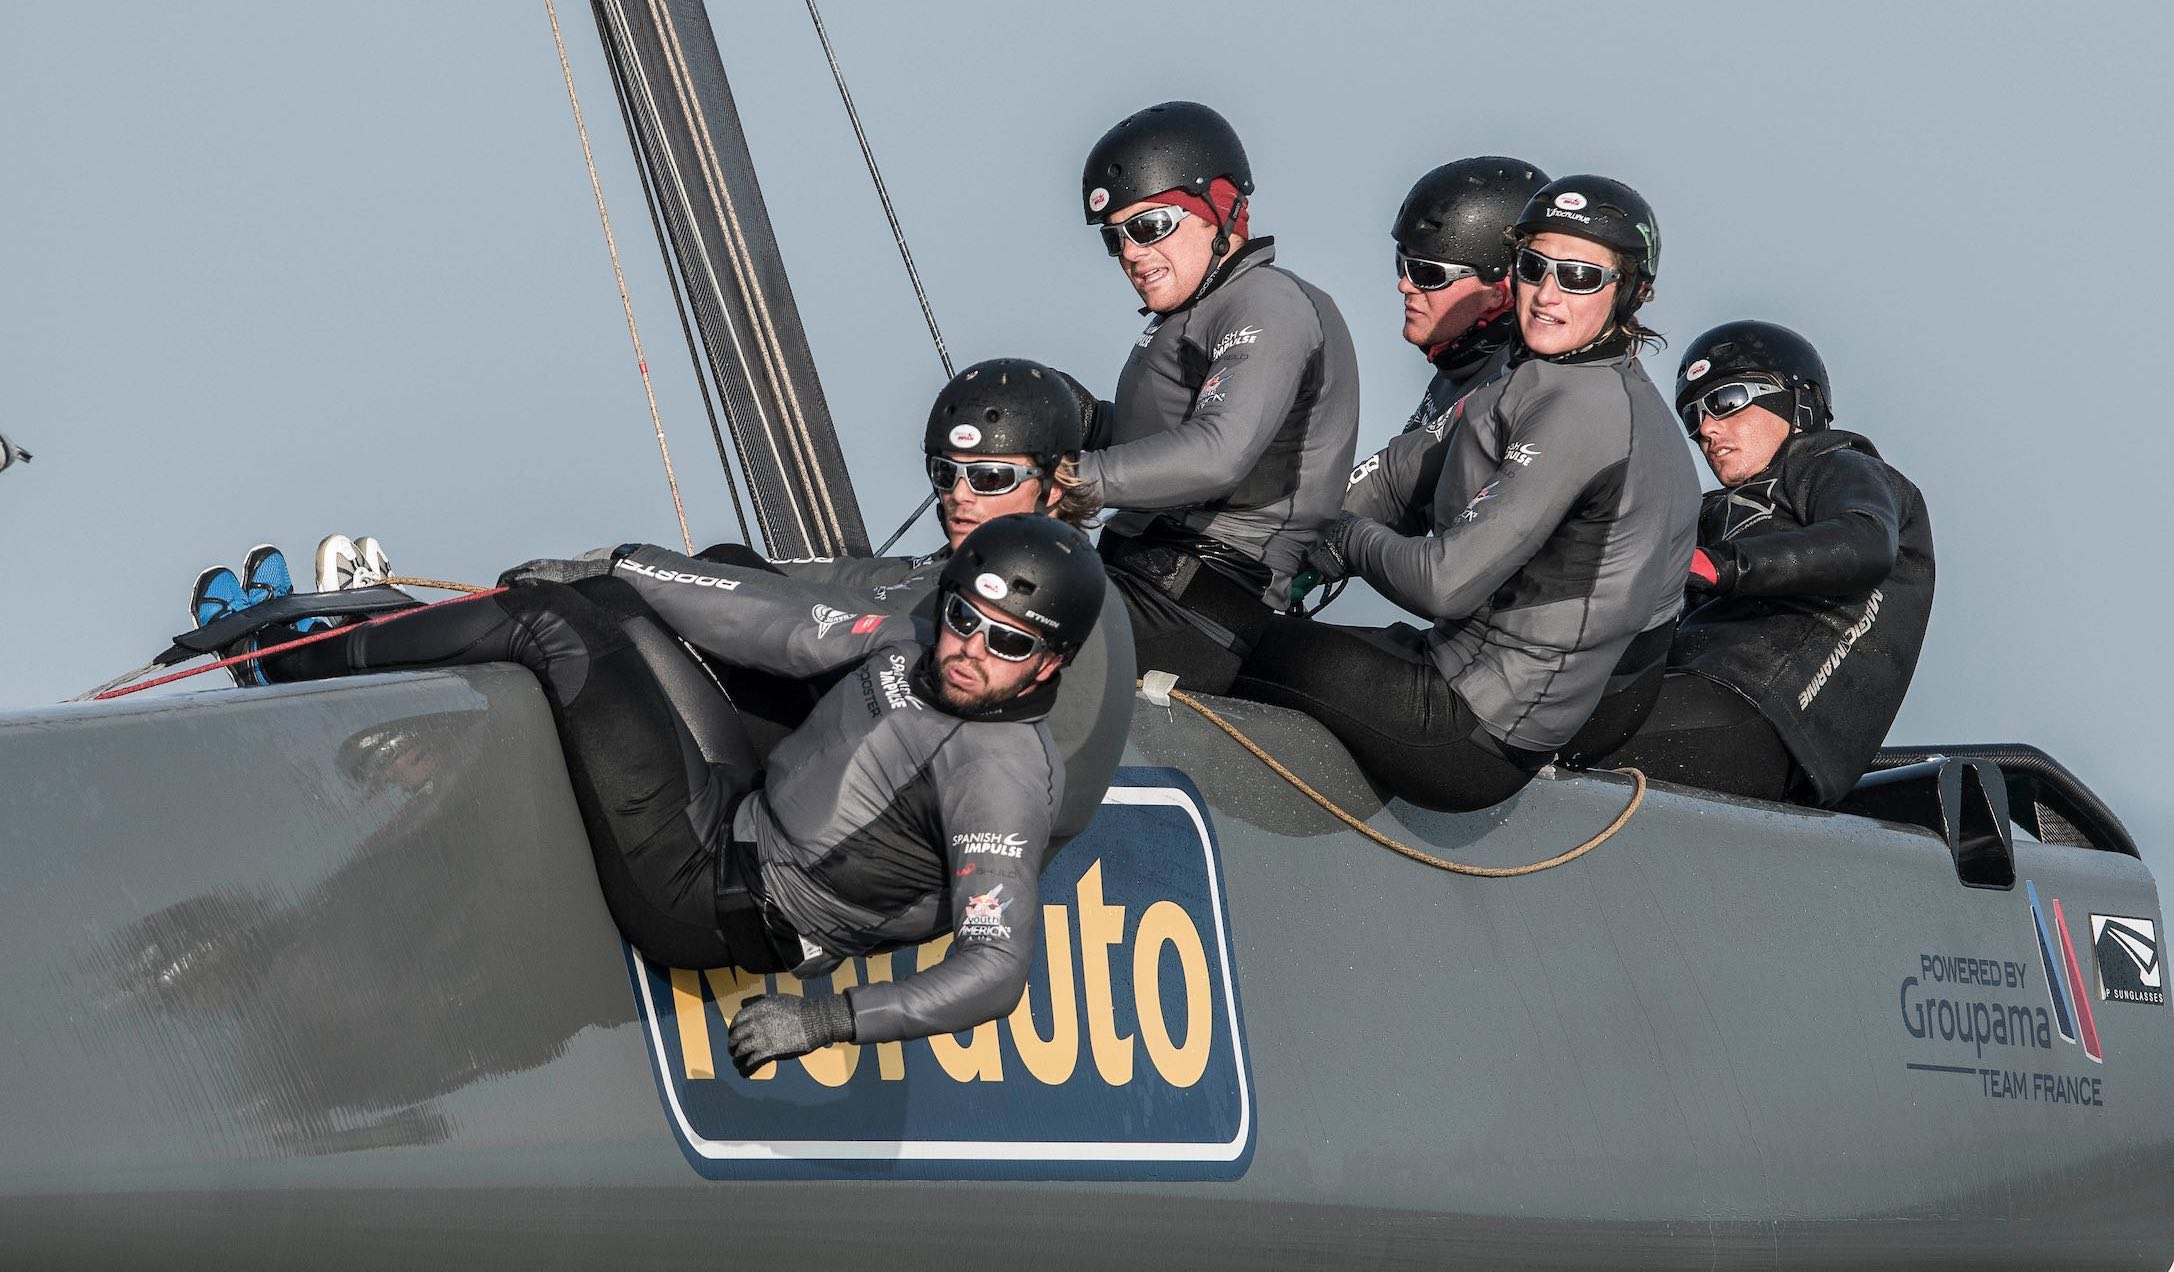 QUIBERON - FRANCE: Spanish Impulse America's Cup youth team trains at Port Haliguen Quiberon on February 9 2017 in Quiberon, France. Photo by Xaume Olleros for LiP Sunglasses